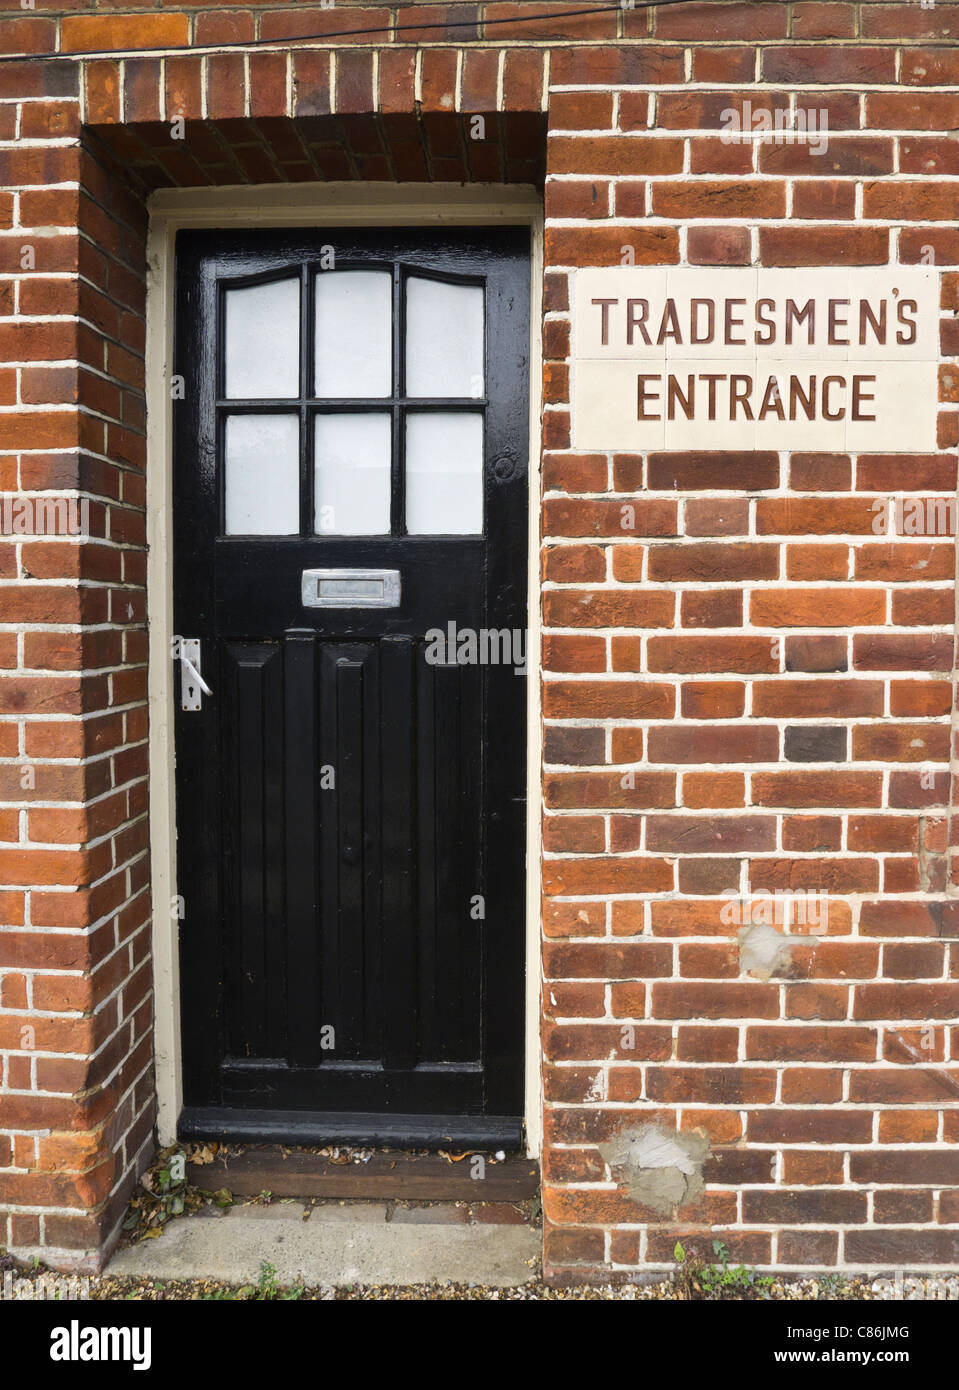 Doorway with a sign saying 'Tradesmen's Entrance.' - Stock Image